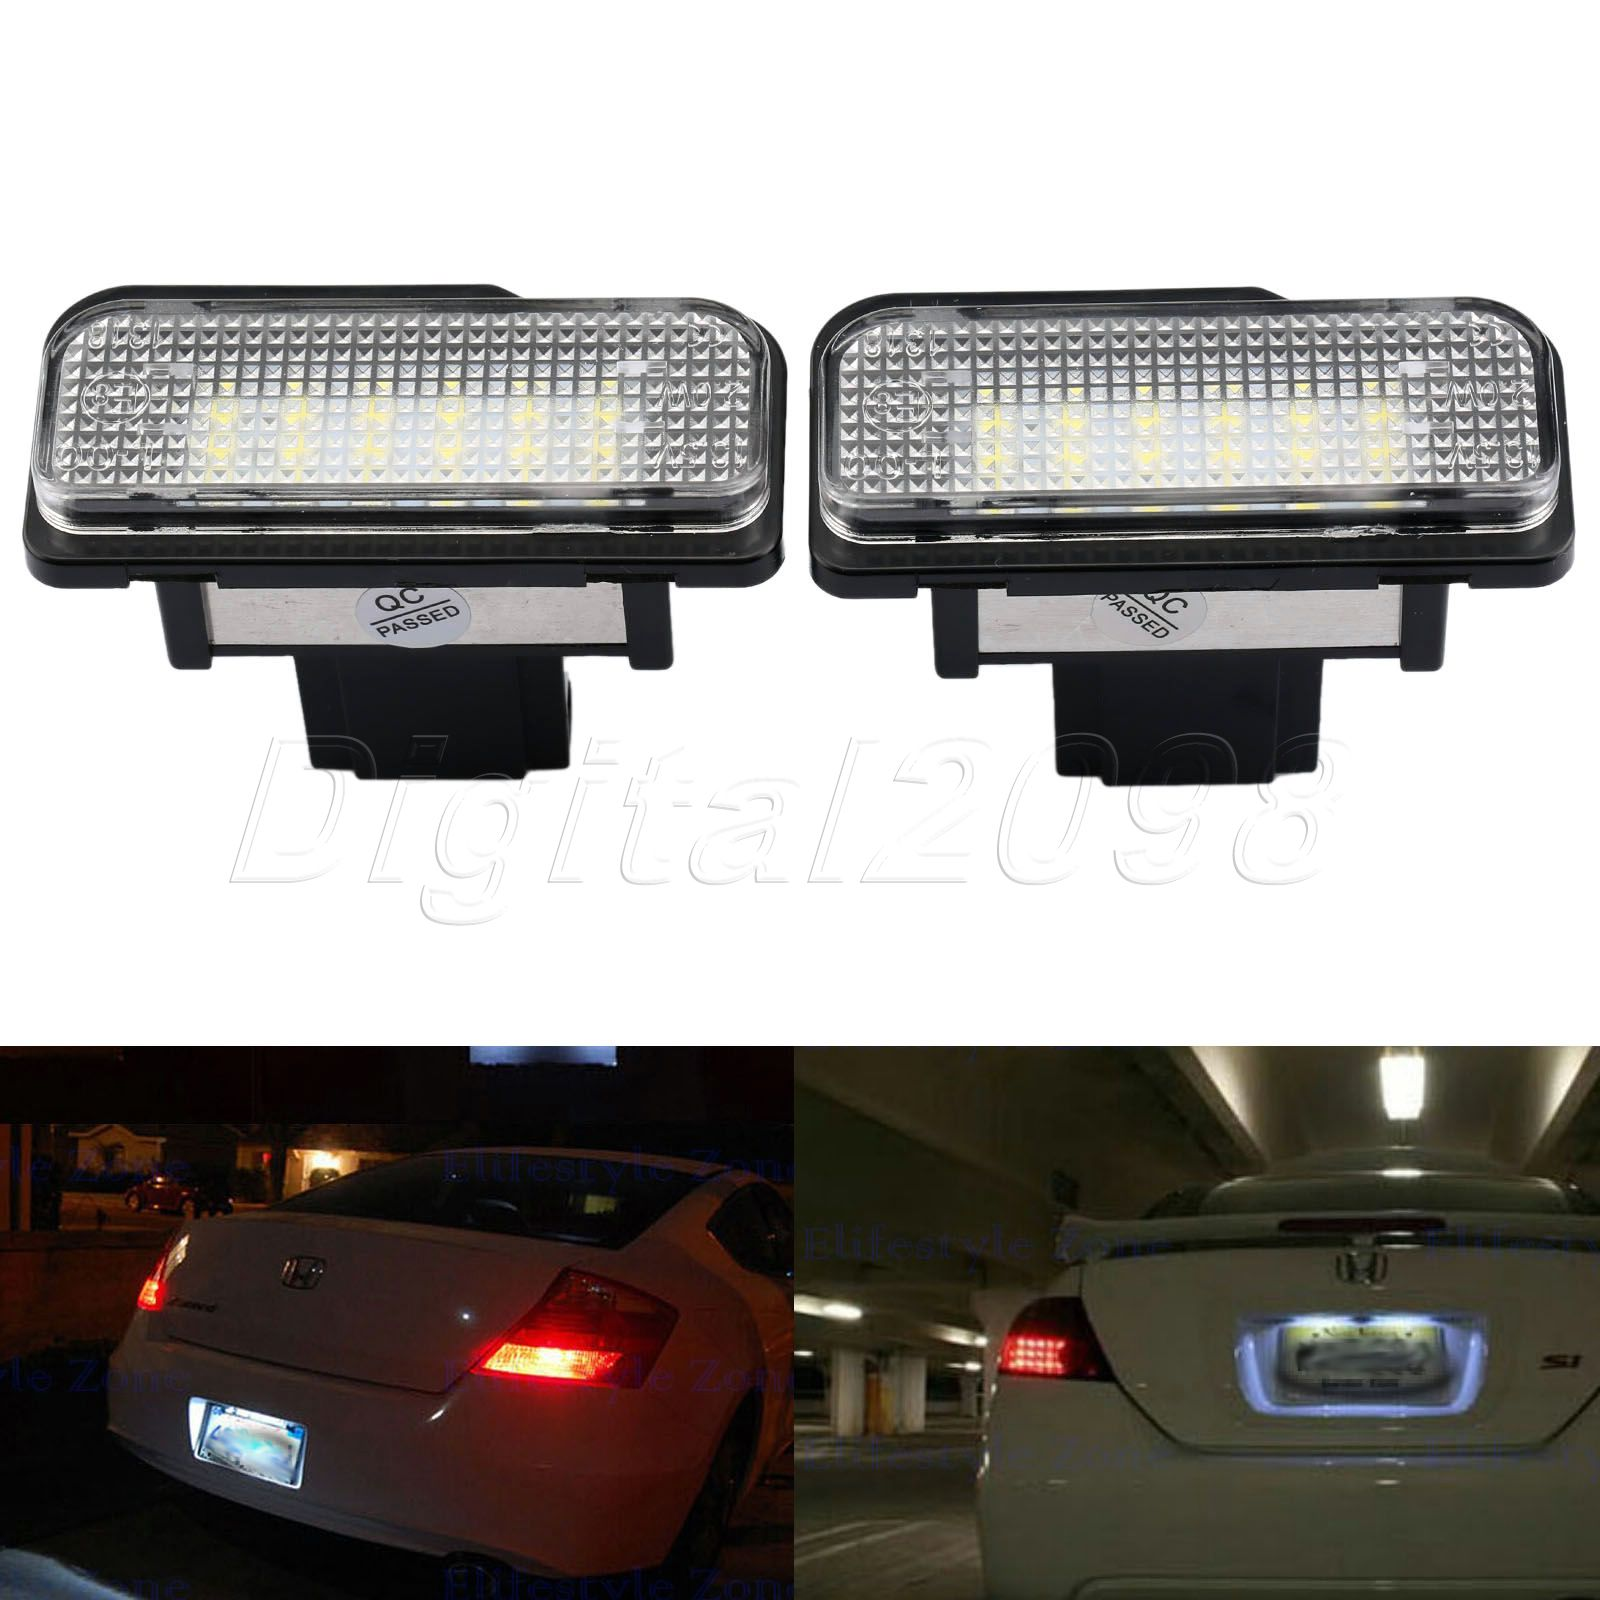 Yetaha 2Pcs Car LED License Number Plate Light Bulb Lamp  White Error Free 12V SMD3528 For Mercedes W211 W203 W219 R171 2 pair super white 6000k canbus error free smd chip car led license plate light auto lamp number for ford mondeo mk ii 96 00